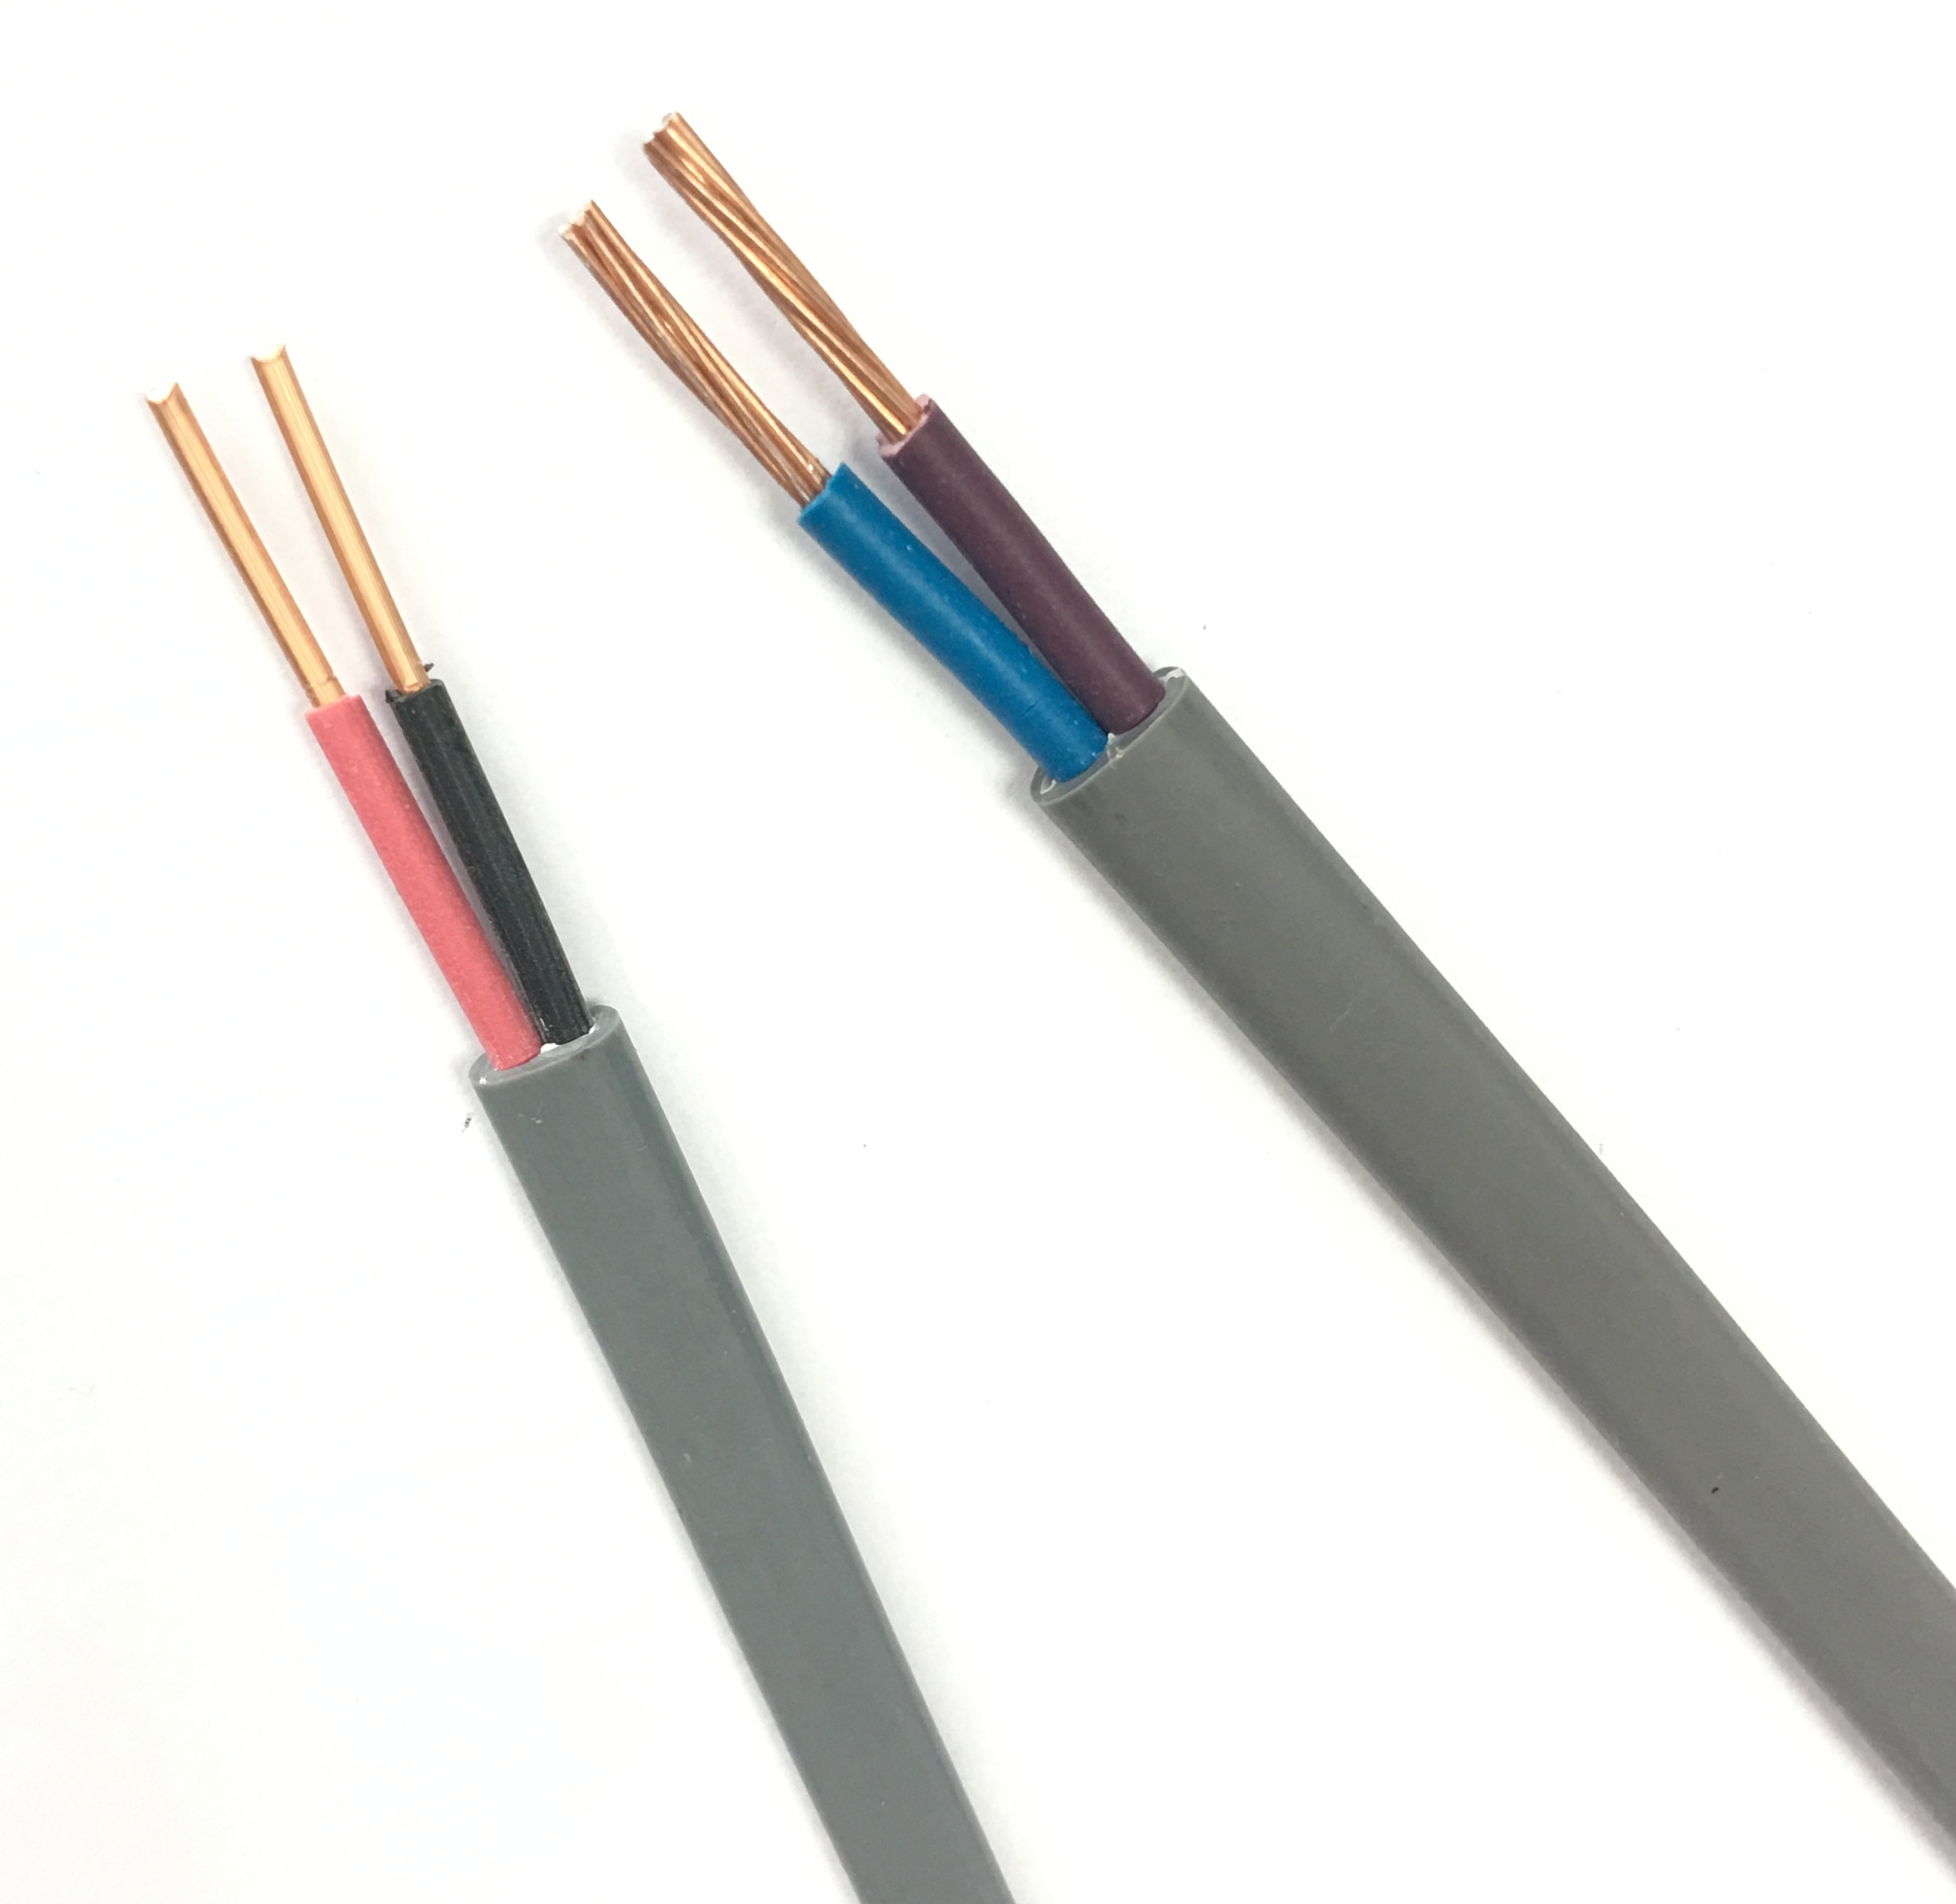 [WLLP_2054]   Copper Wire For Sale House Wiring Electrical Transformer Copper Wire Pvc  Colored Insulation Copper Cable Specifications - Buy Copper Wire For  Sale,Electrical Transformer Copper Wire,Pvc Colored Insulation Copper Cable  Specifications Product on   House Transformer Wiring      Alibaba.com